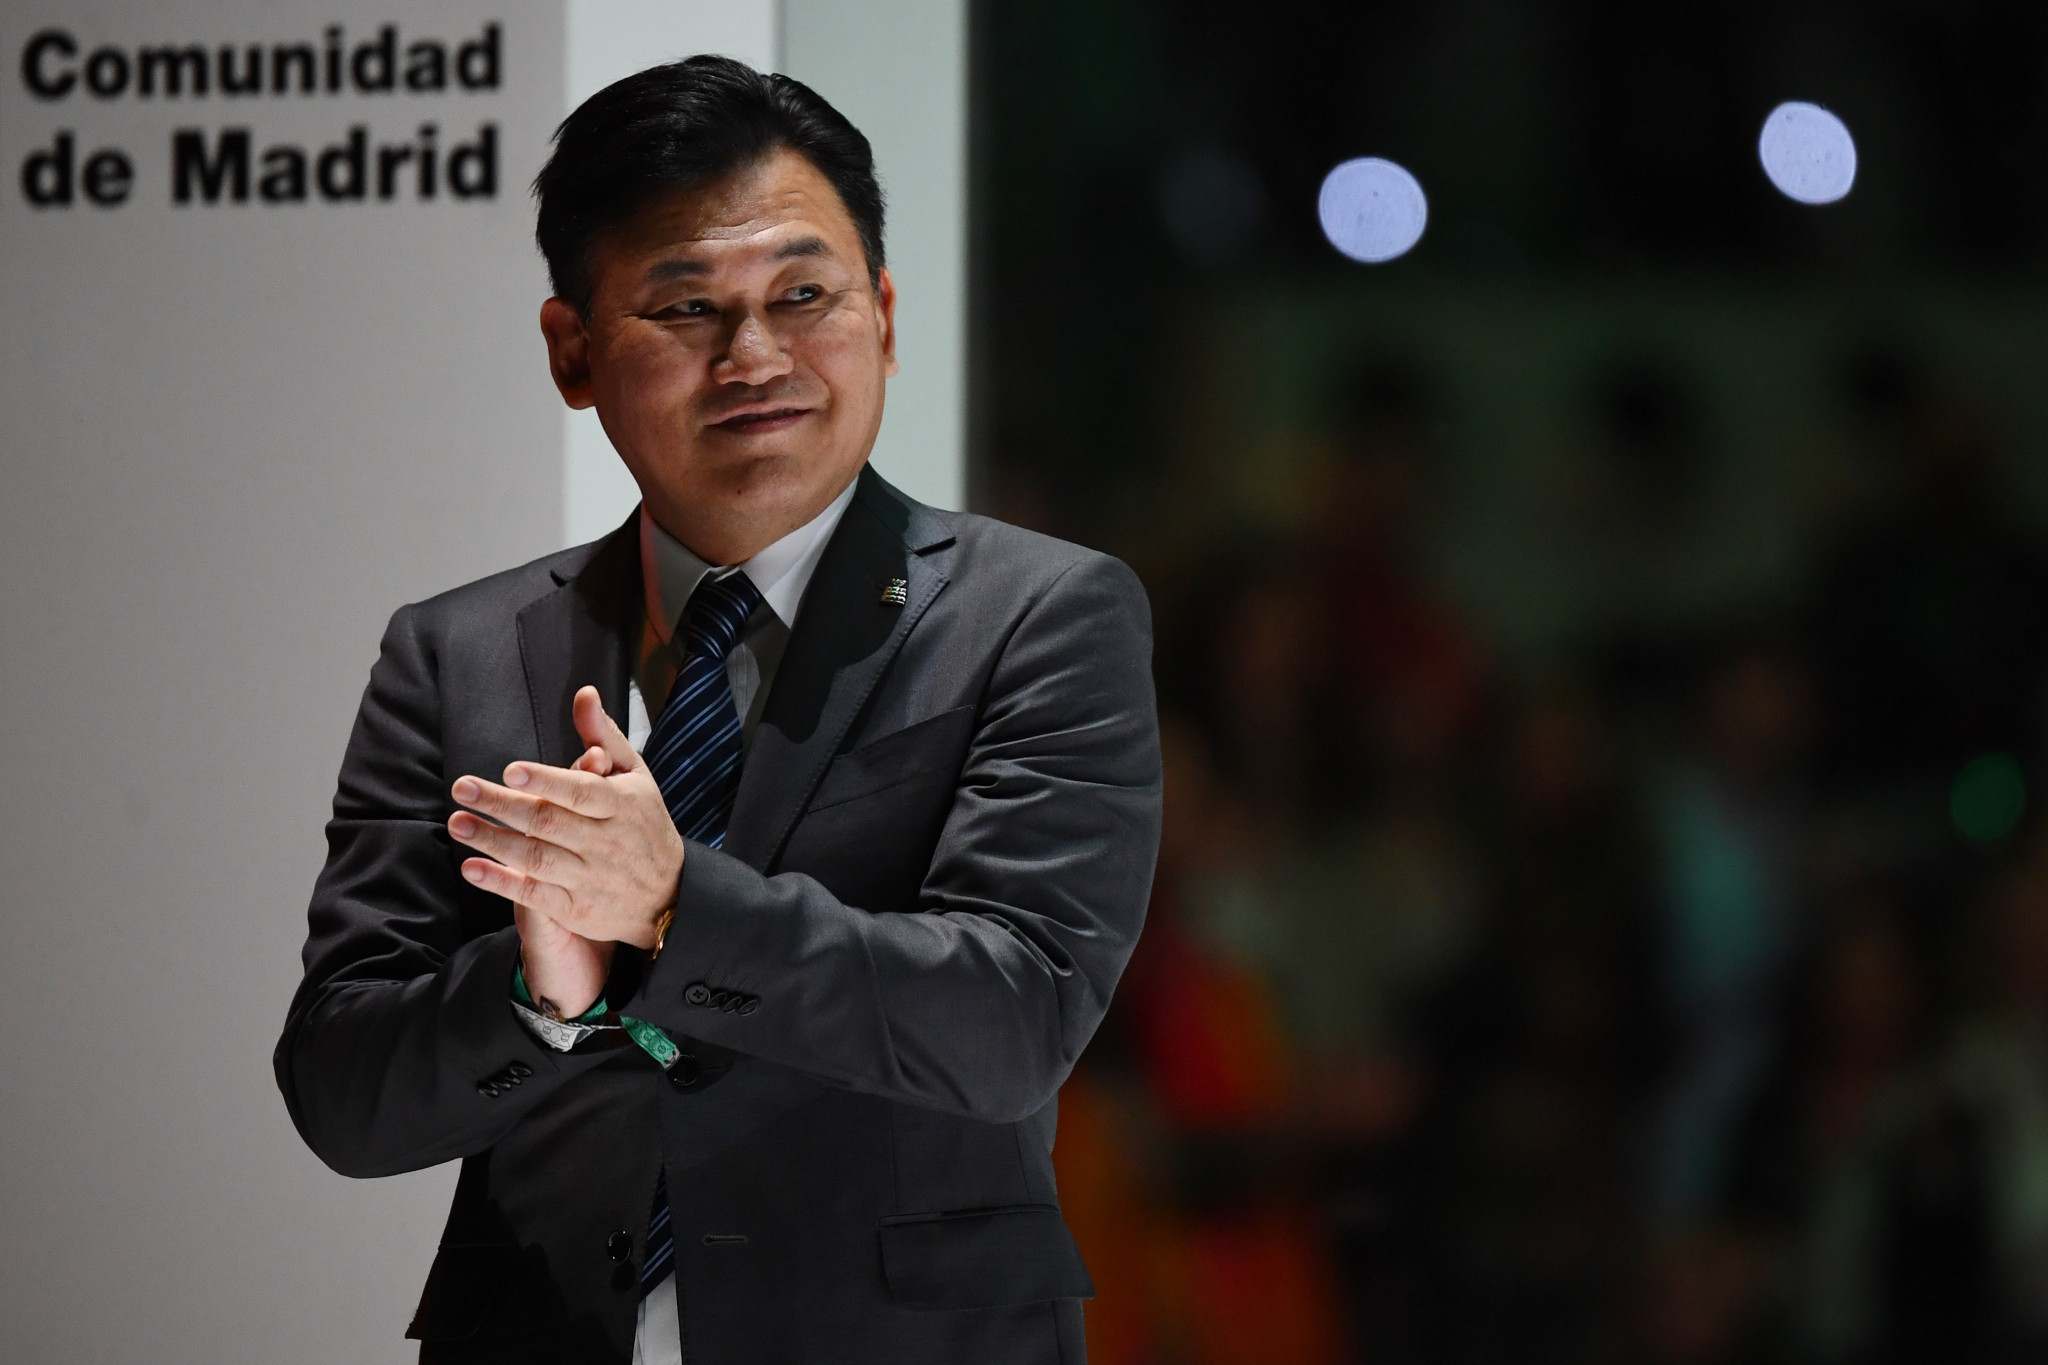 """Hiroshi Mikitani, founder and chief executive of Rakuten, claims the """"risk is too big"""" to host the Games ©Getty Images"""